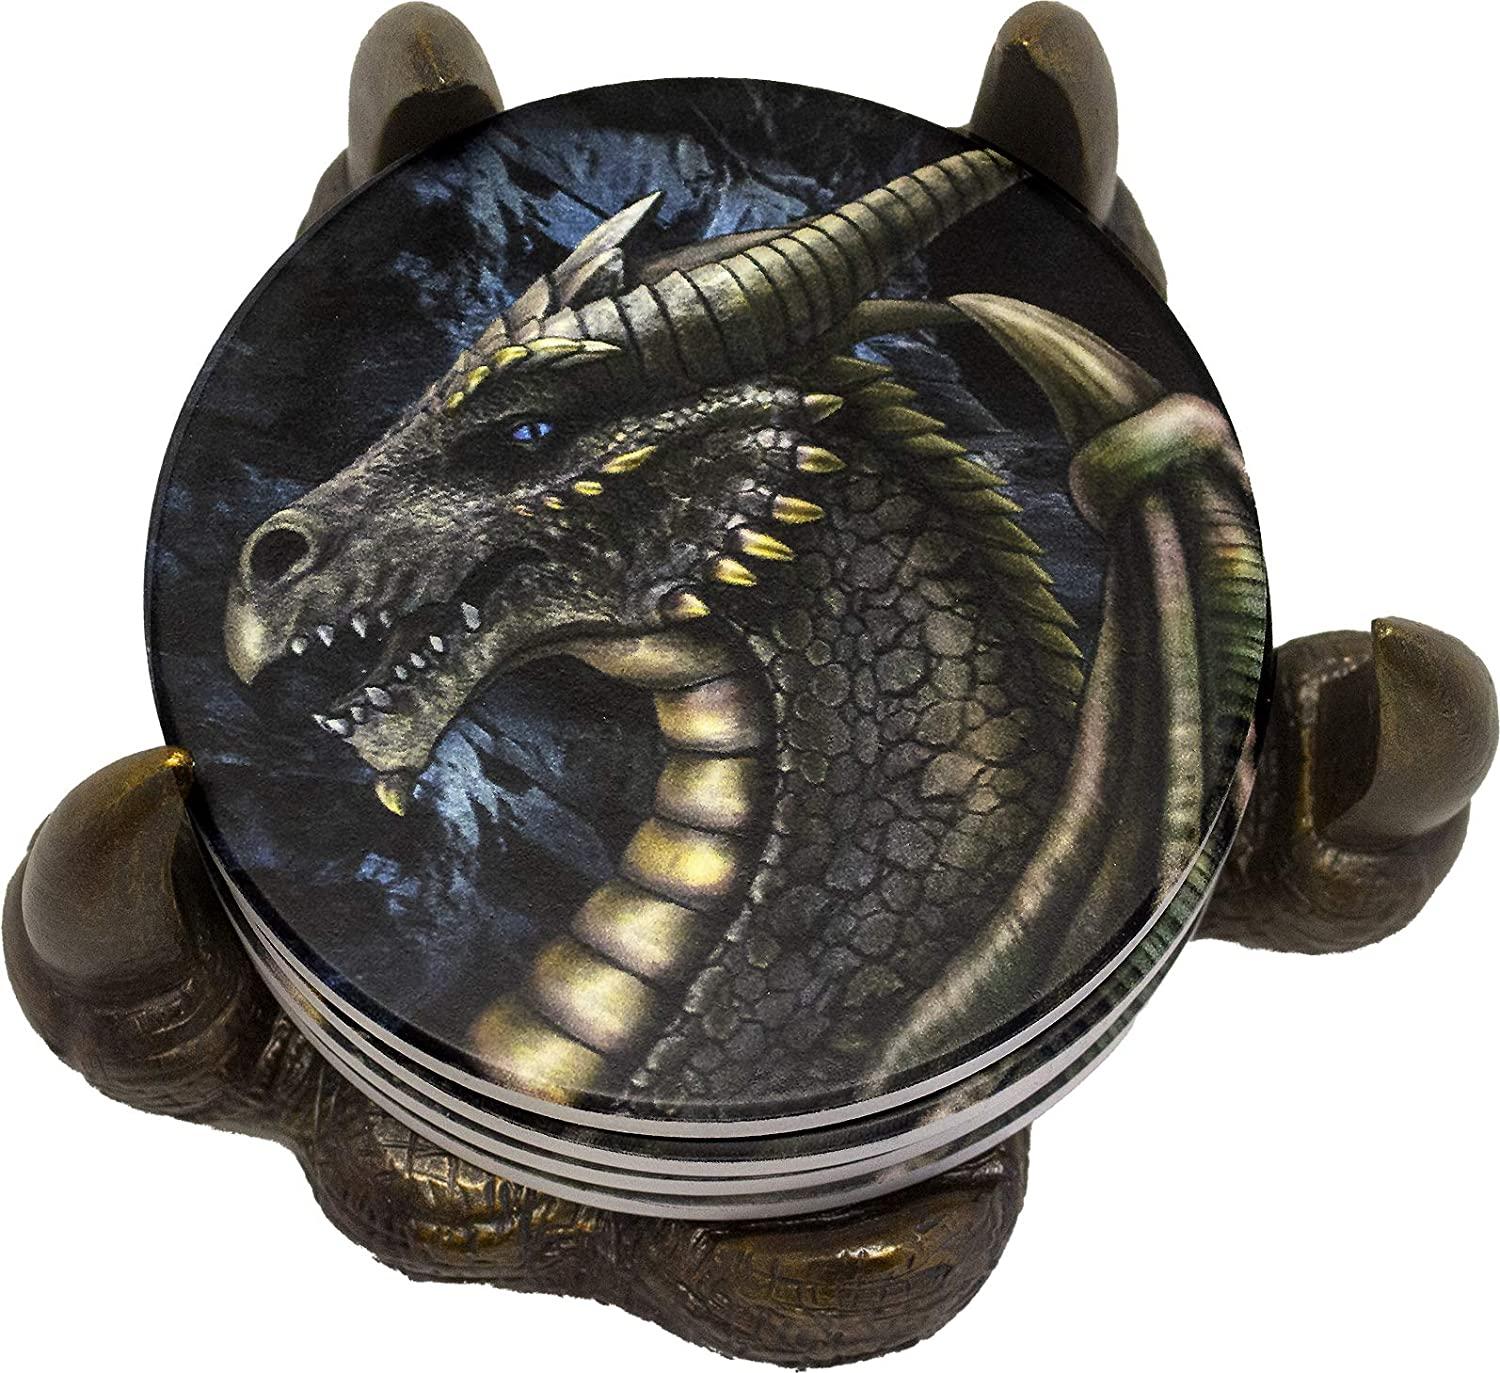 World of Wonders Gifts Ancient Guardians Series Dragon Claw (5 Piece Set) | Coasters for Drinks Absorbent with Holder Coaster | Outdoor Coasters | Ceramic Fantasy Coasters 6